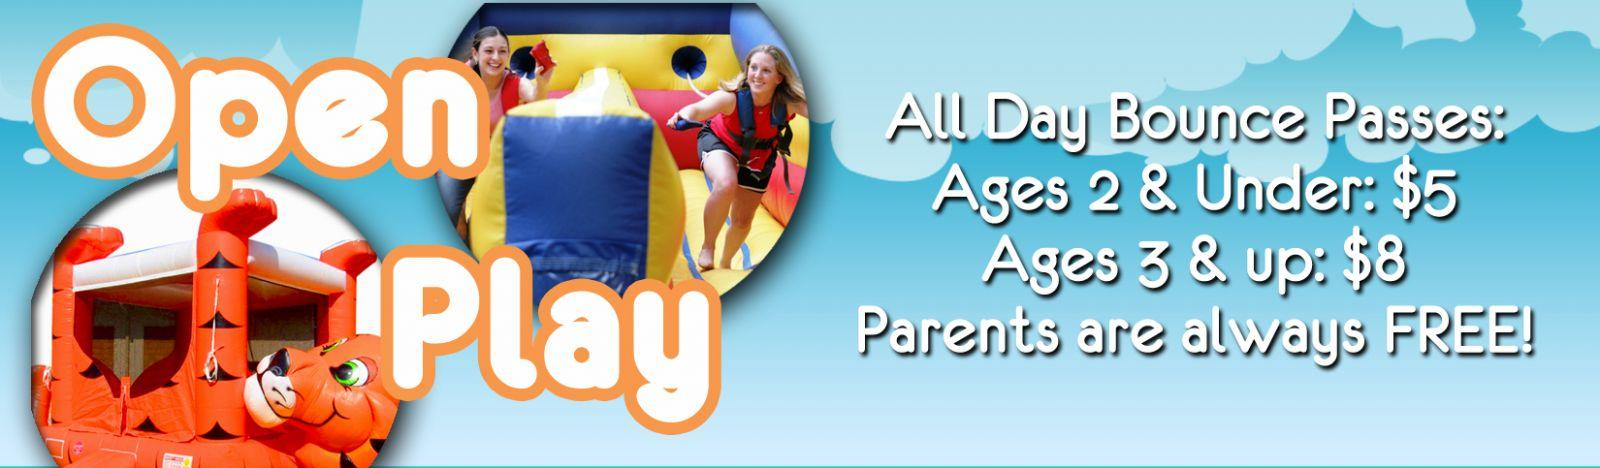 9900 Sq Feet Of Fun With EIGHT HUGE Inflatables